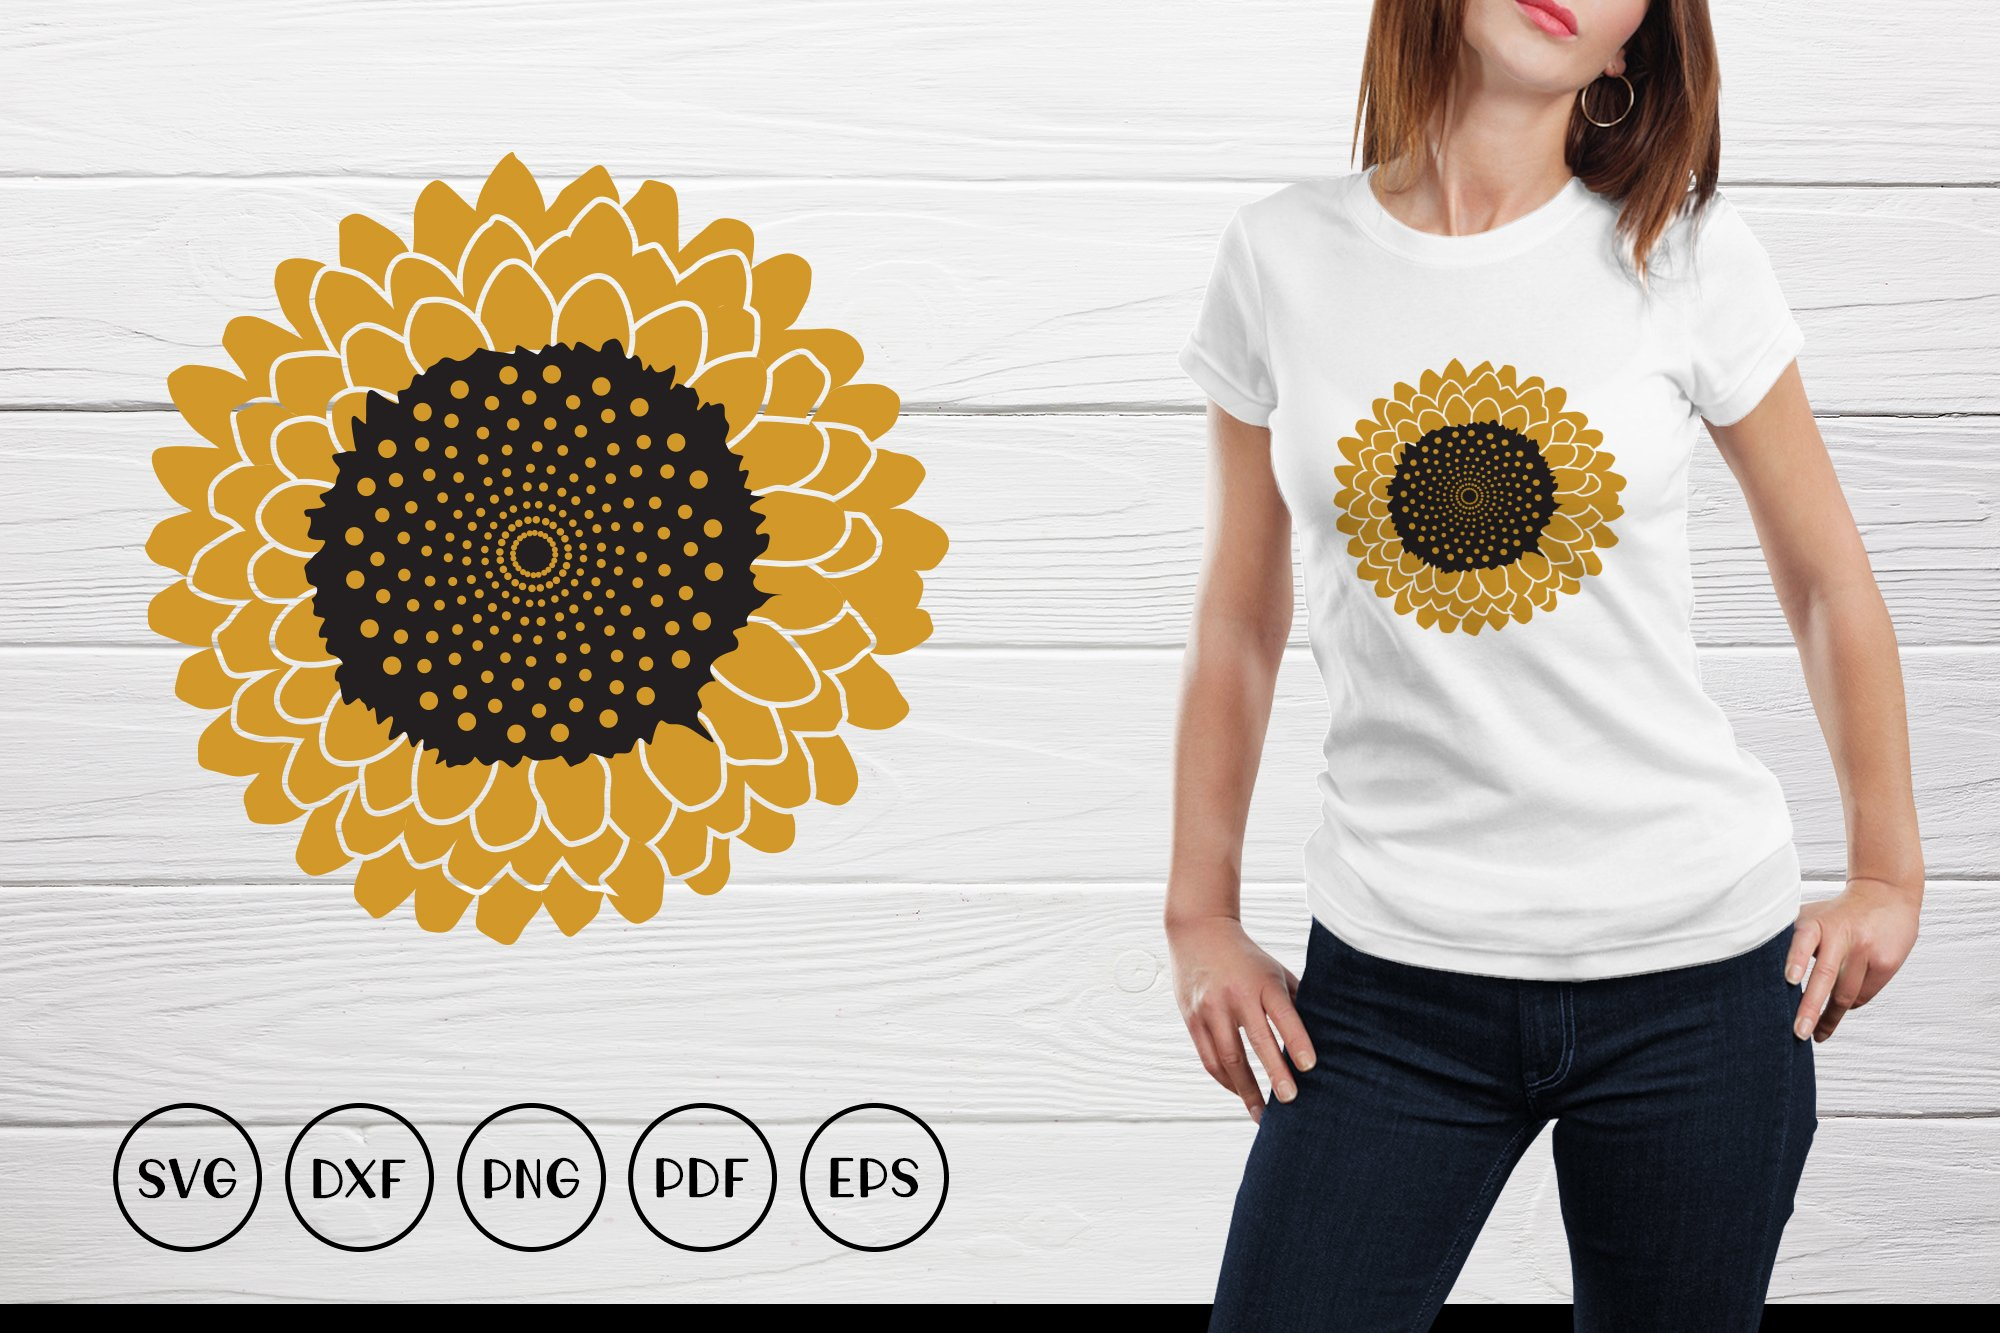 Sunflower SVG, Sunflower Clipart, Sunflower Monogram SVG example image 1